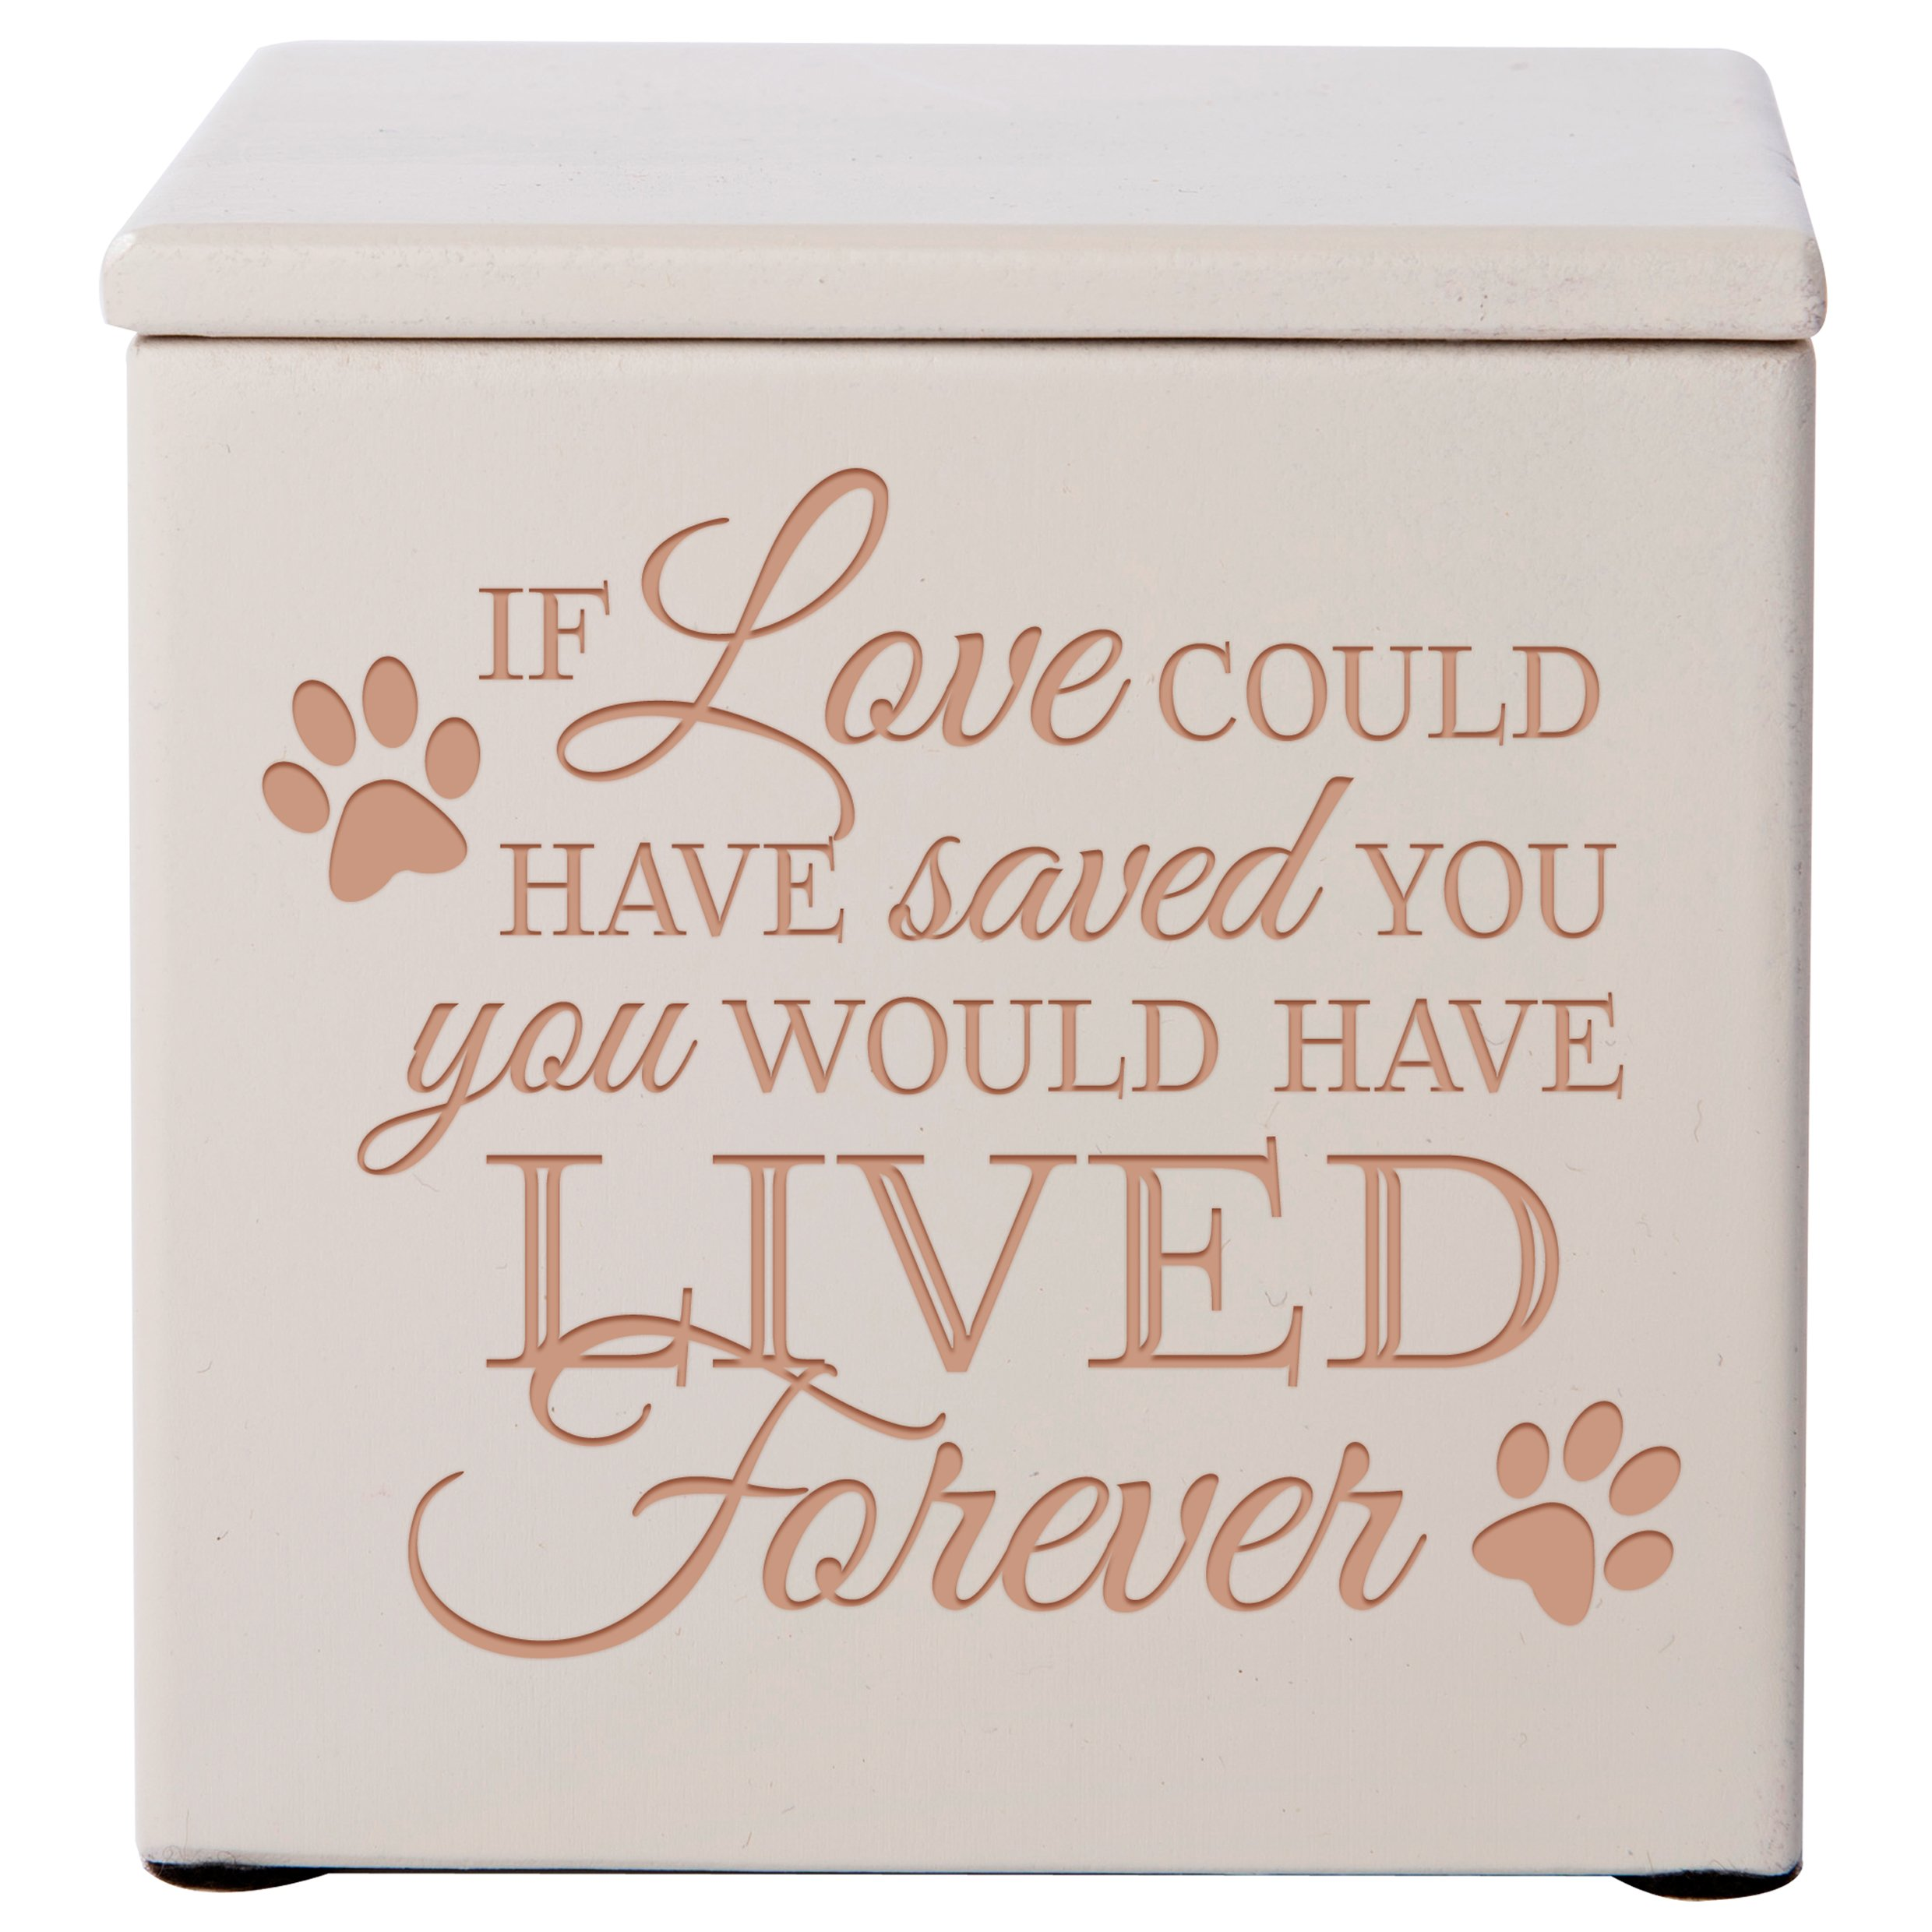 Cremation Urns for Pets Small Memorial Keepsake Box for Dogs and Cats, Urn for pet Ashes If Love Could Have Saved You You Would Have Lived Forever Holds Small Portion of Ashes (Ivory)